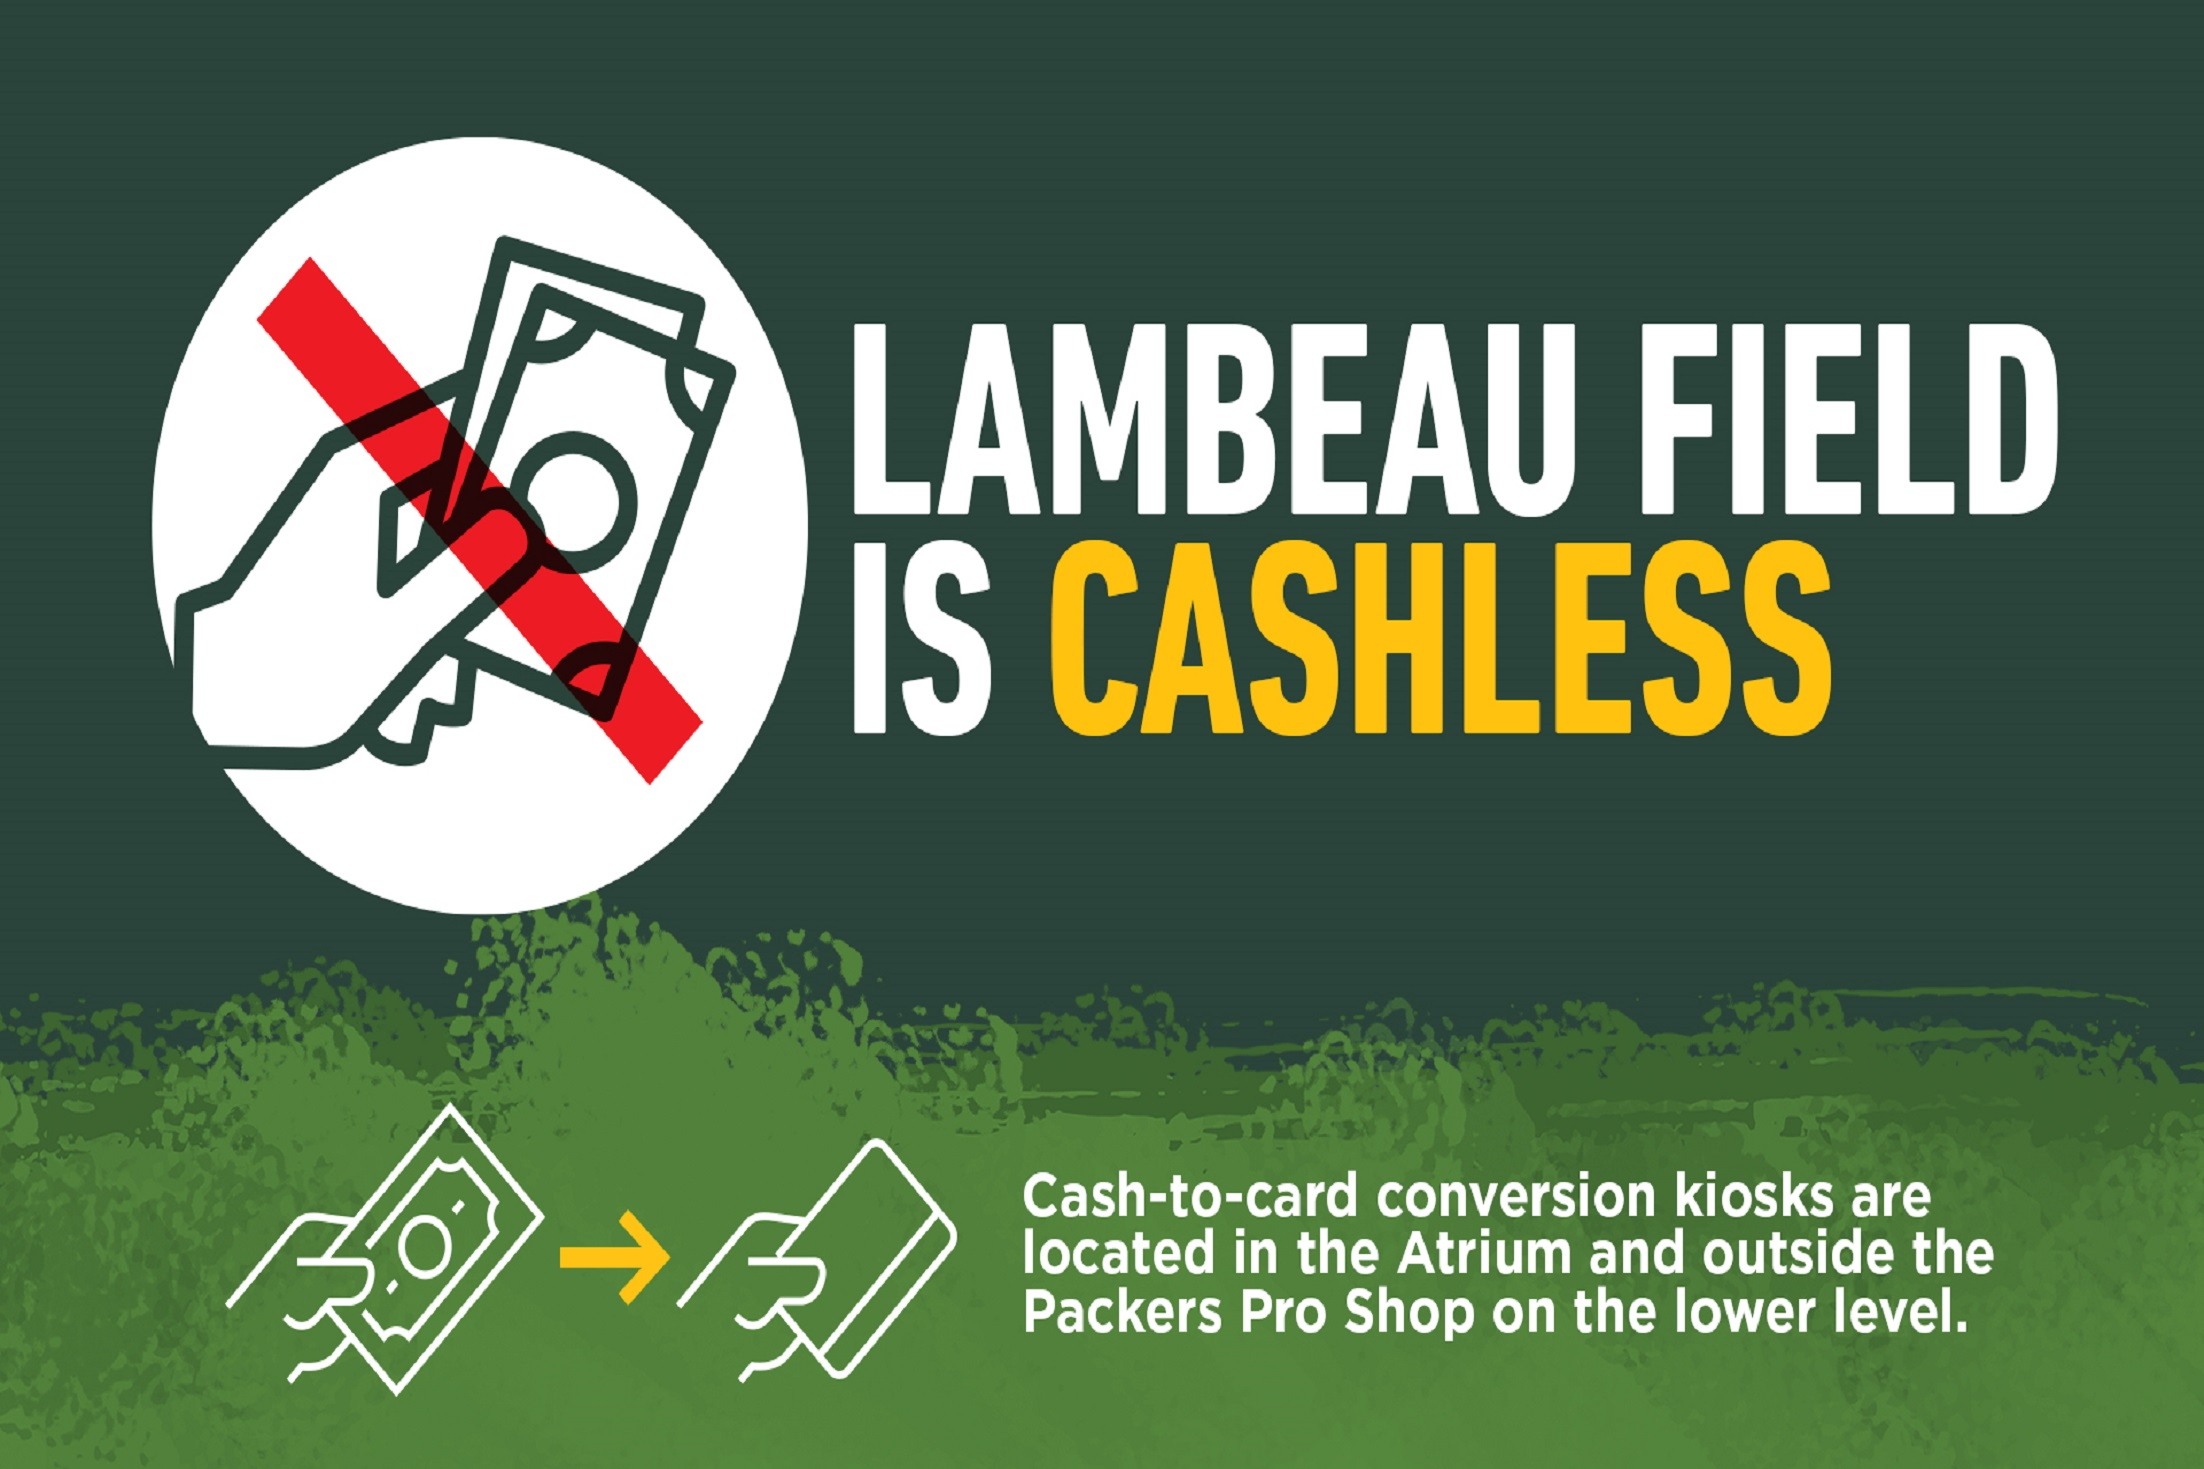 Image indicating Lambeau Field is Cashless